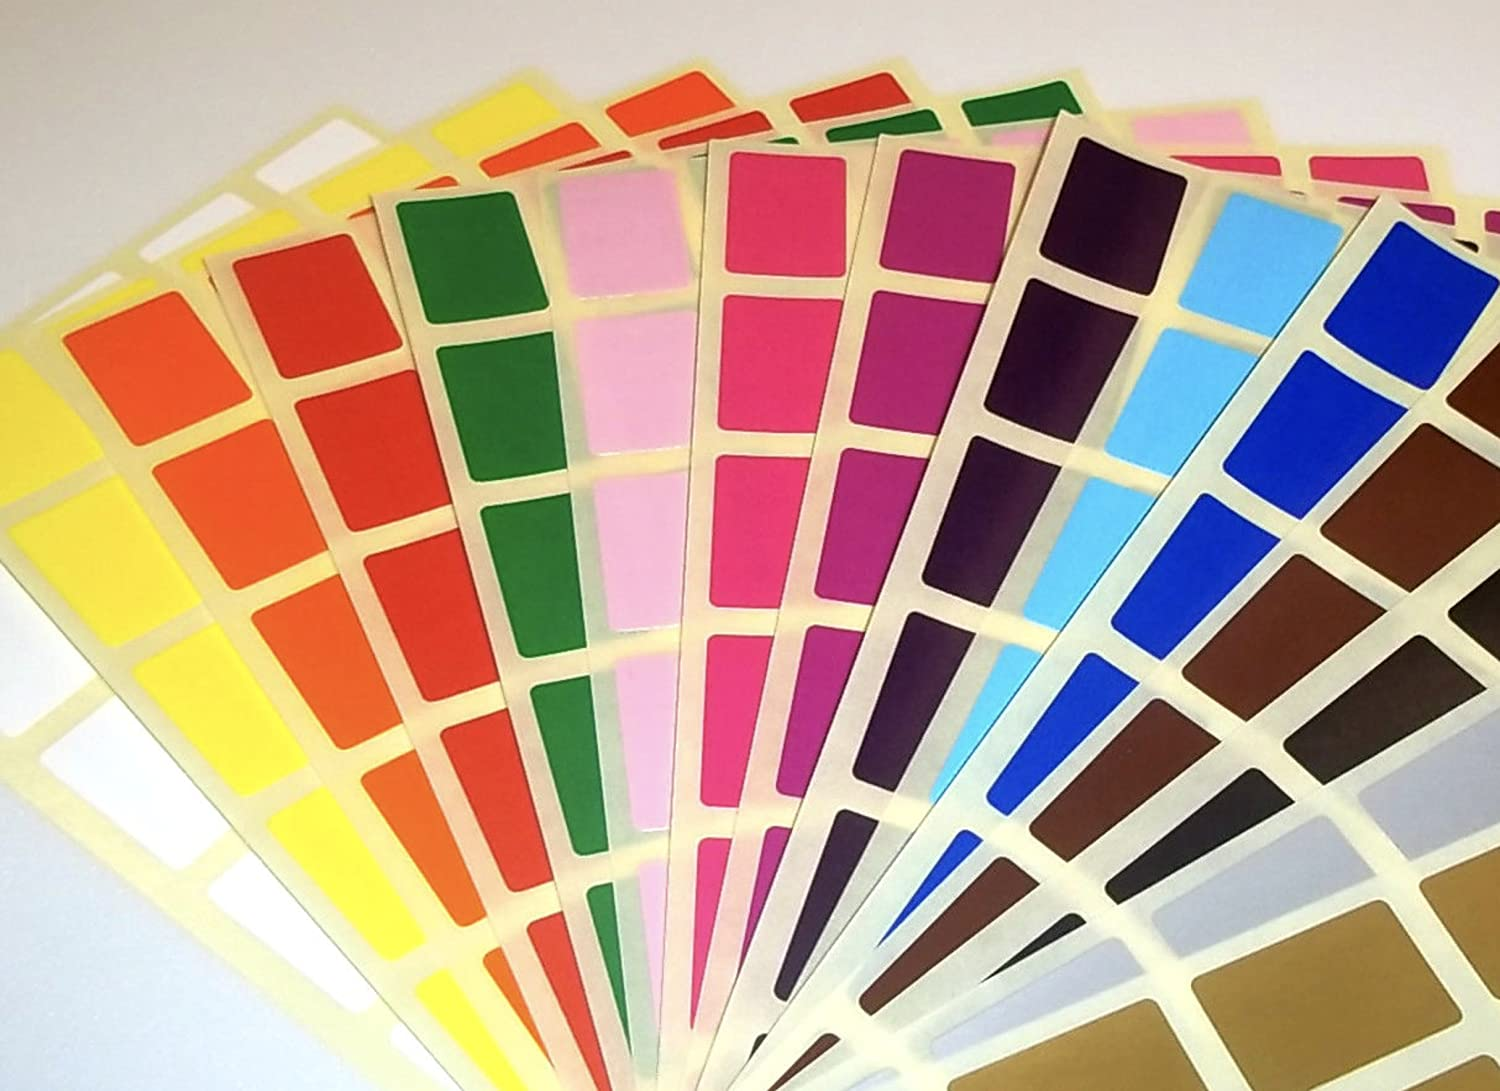 10 x 20mm Rectangle - Assorted / Mixed packs of colour code rectangular stickers / coloured sticky labels / dots (600) Audioprint